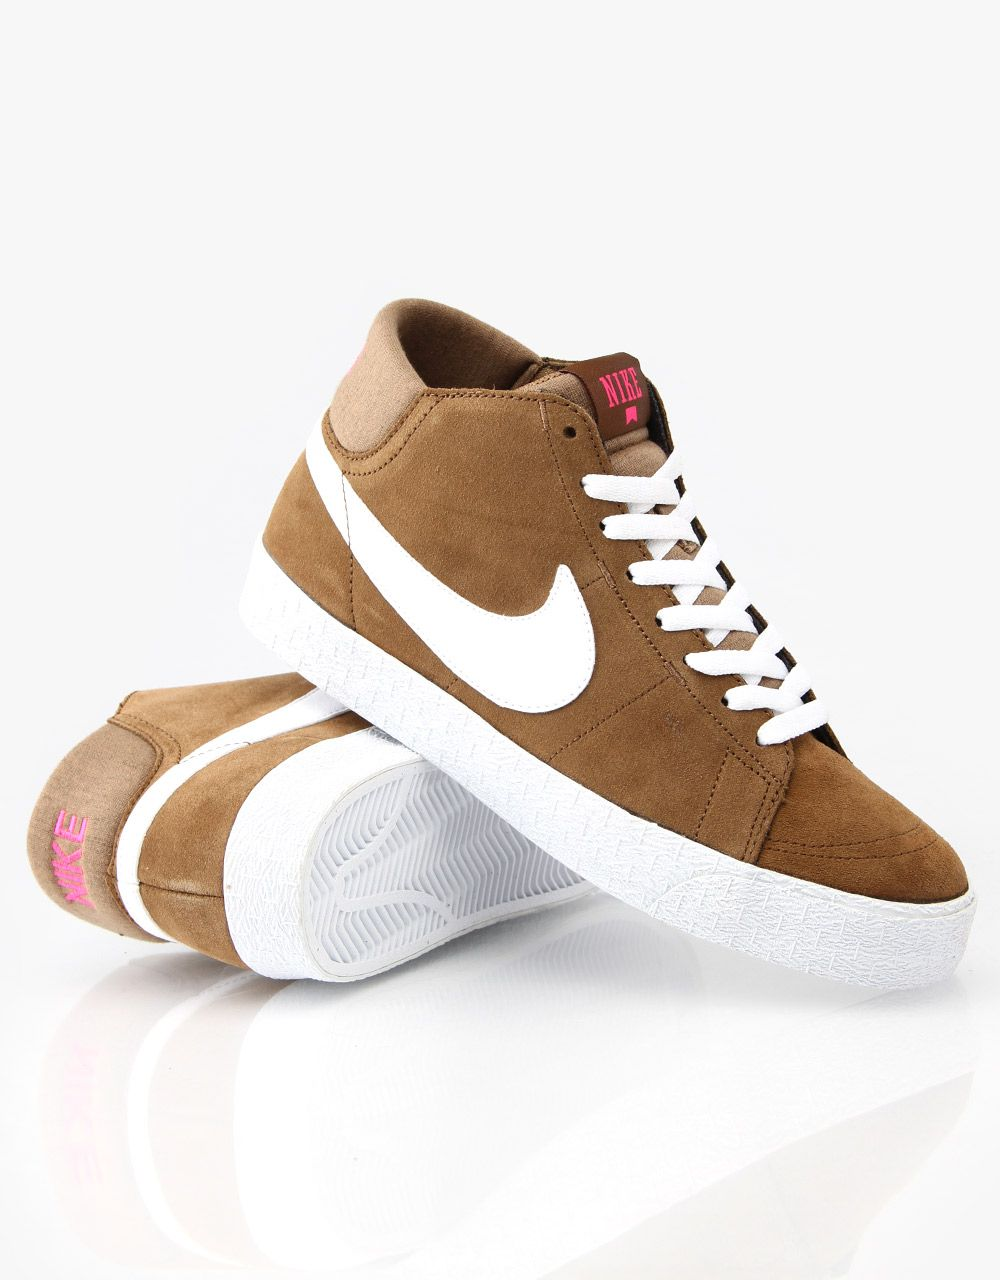 huge selection of c766a f0b27 Nike SB Blazer Mid LR Skate Shoes - Military BrownWhitePink Foil -  RouteOne.co.uk